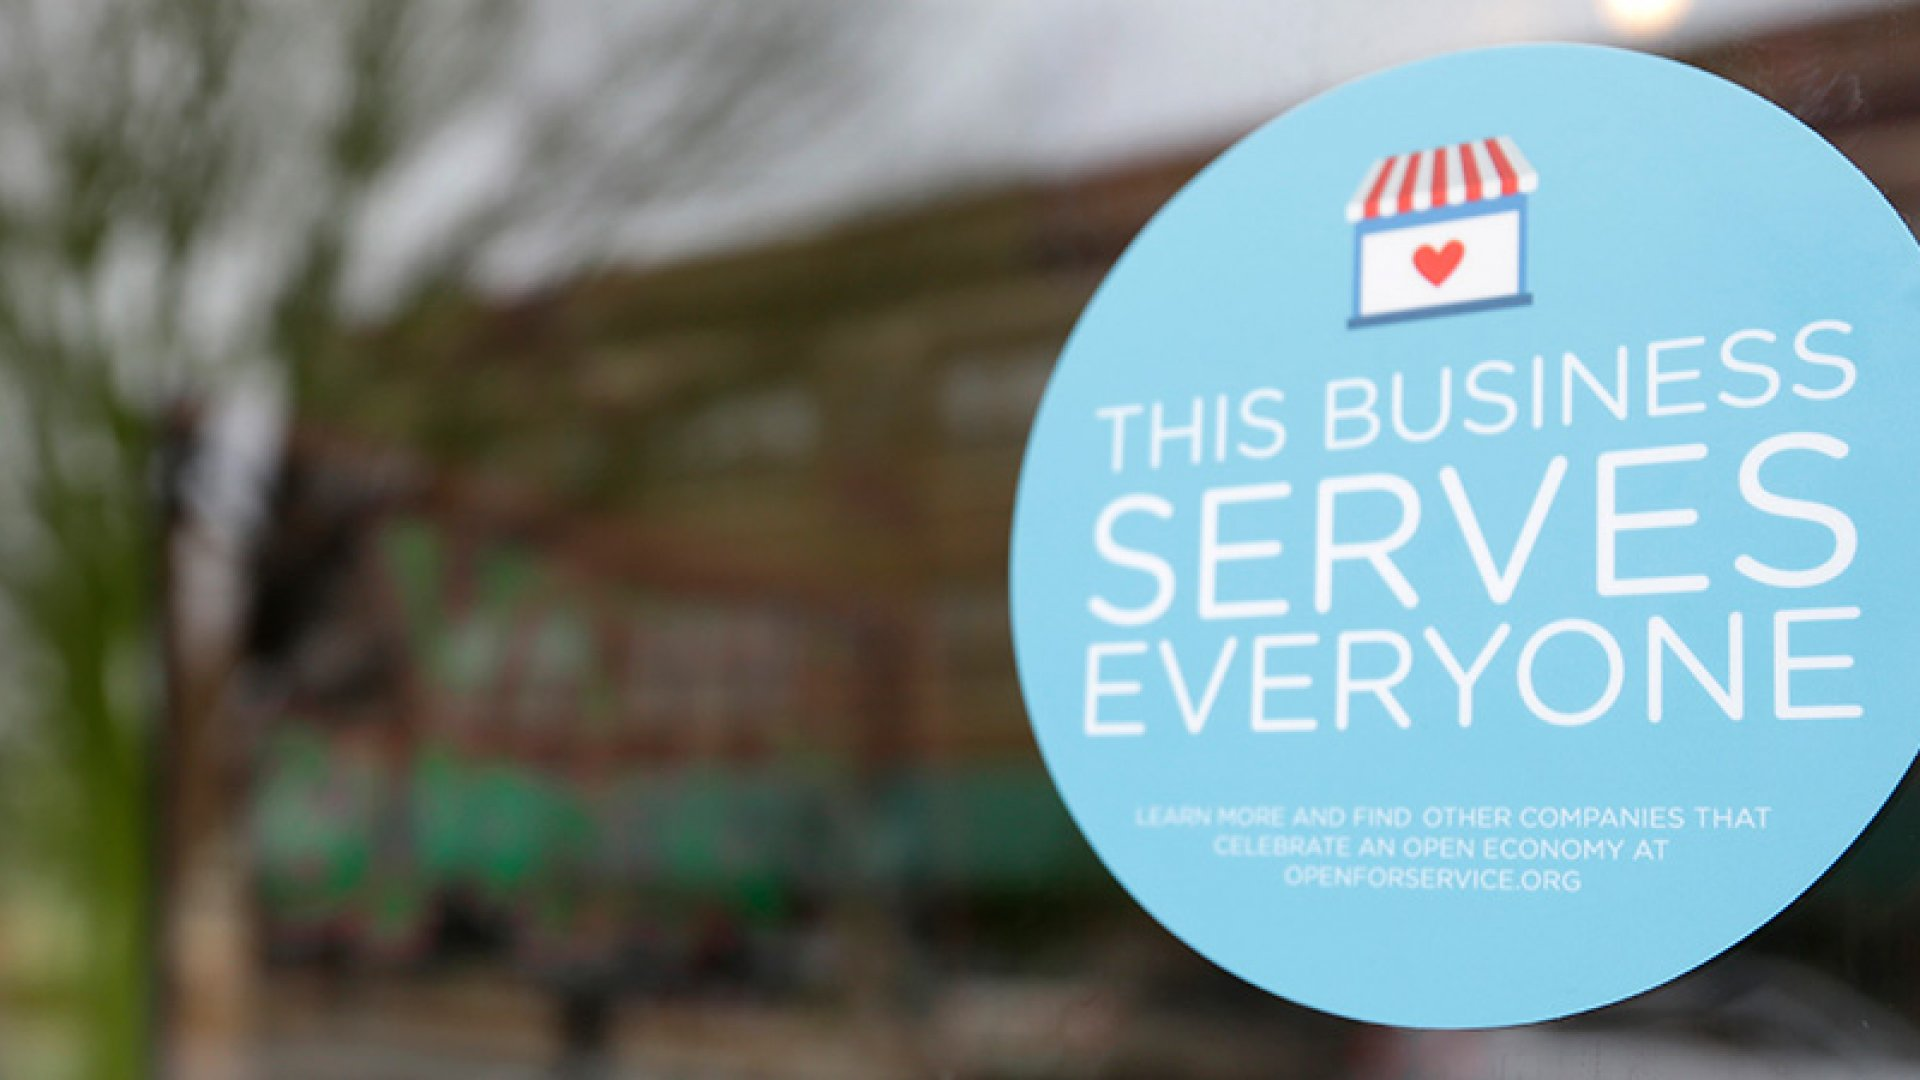 Businesses Take a Stand Against Indiana's Religious Freedom Restoration Act